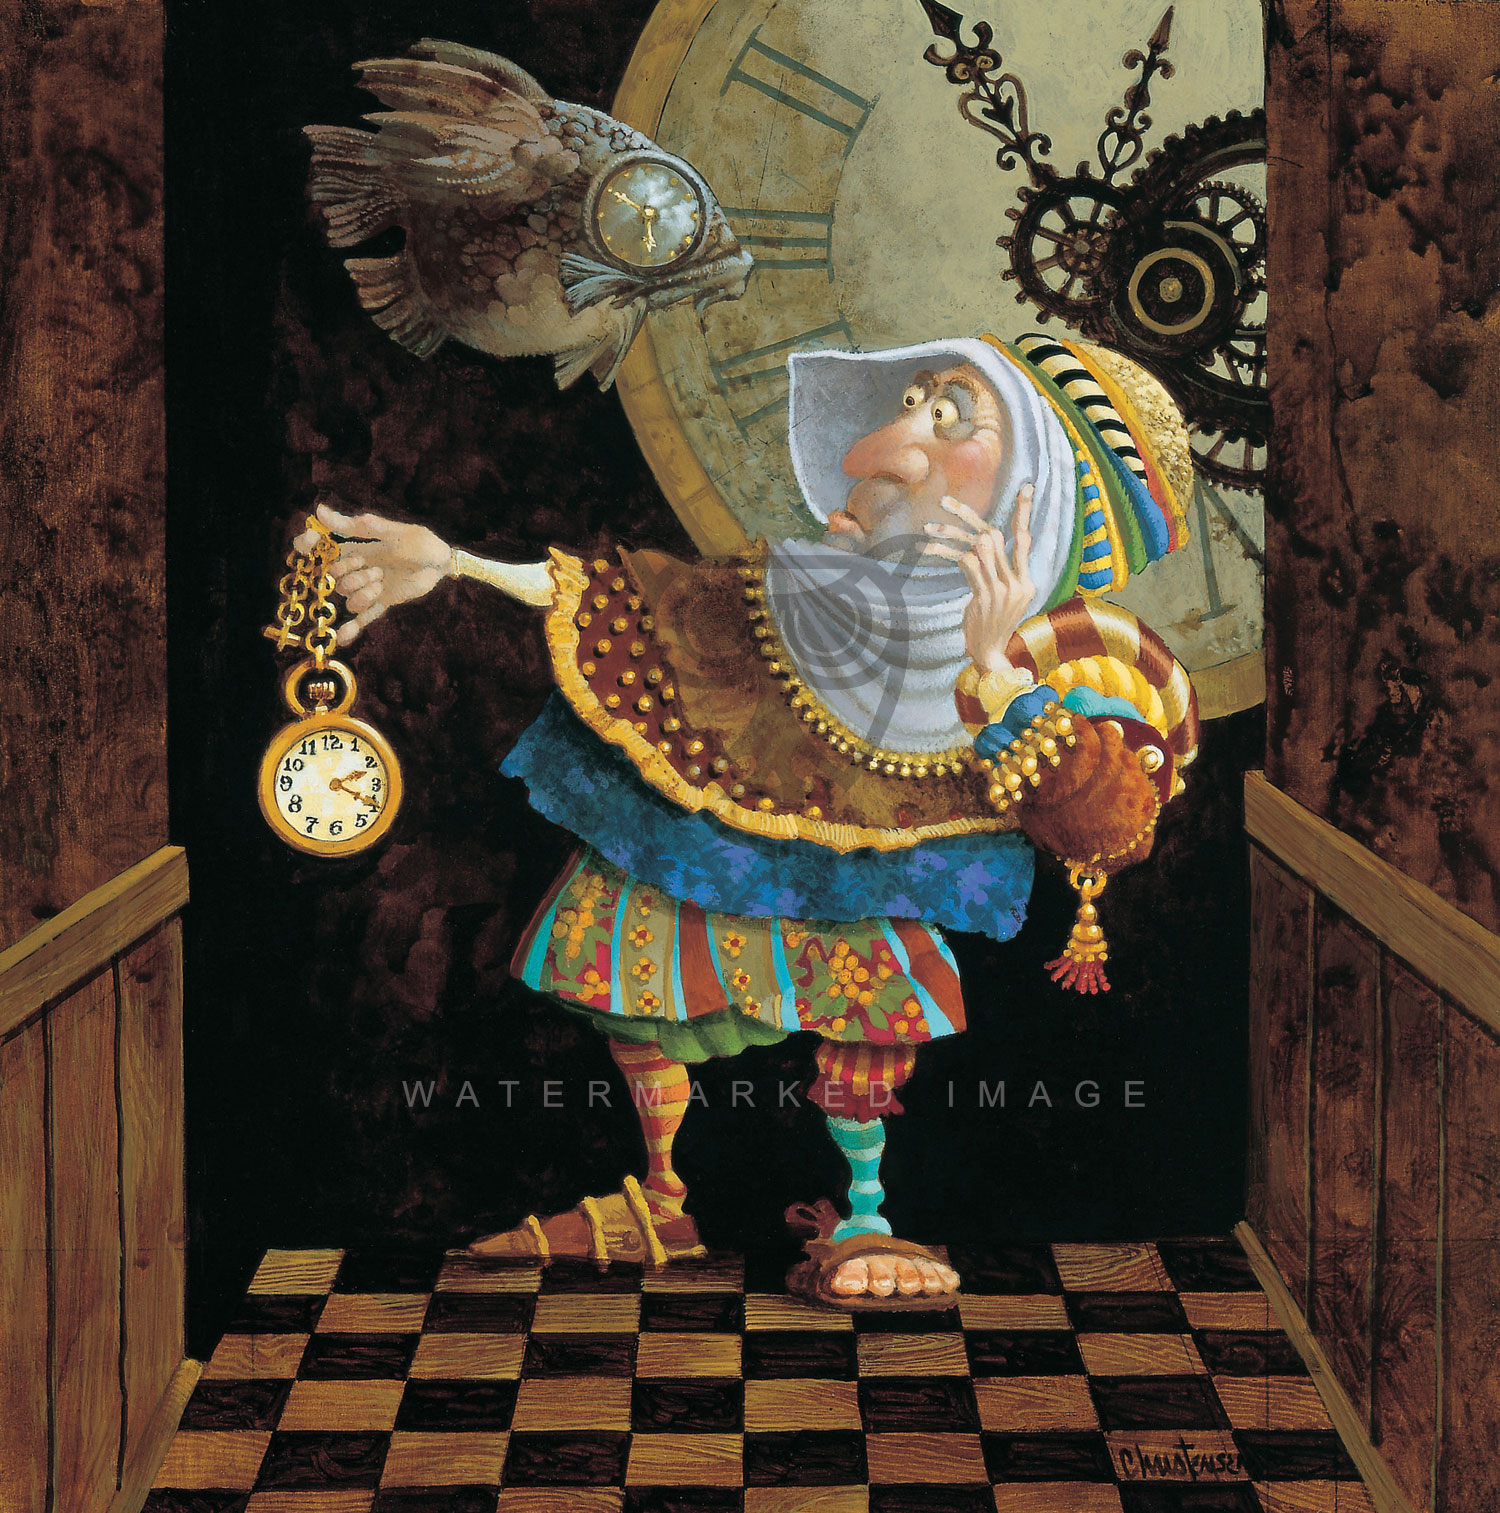 Art After Dark New James Christensen Art Tempus Fugit